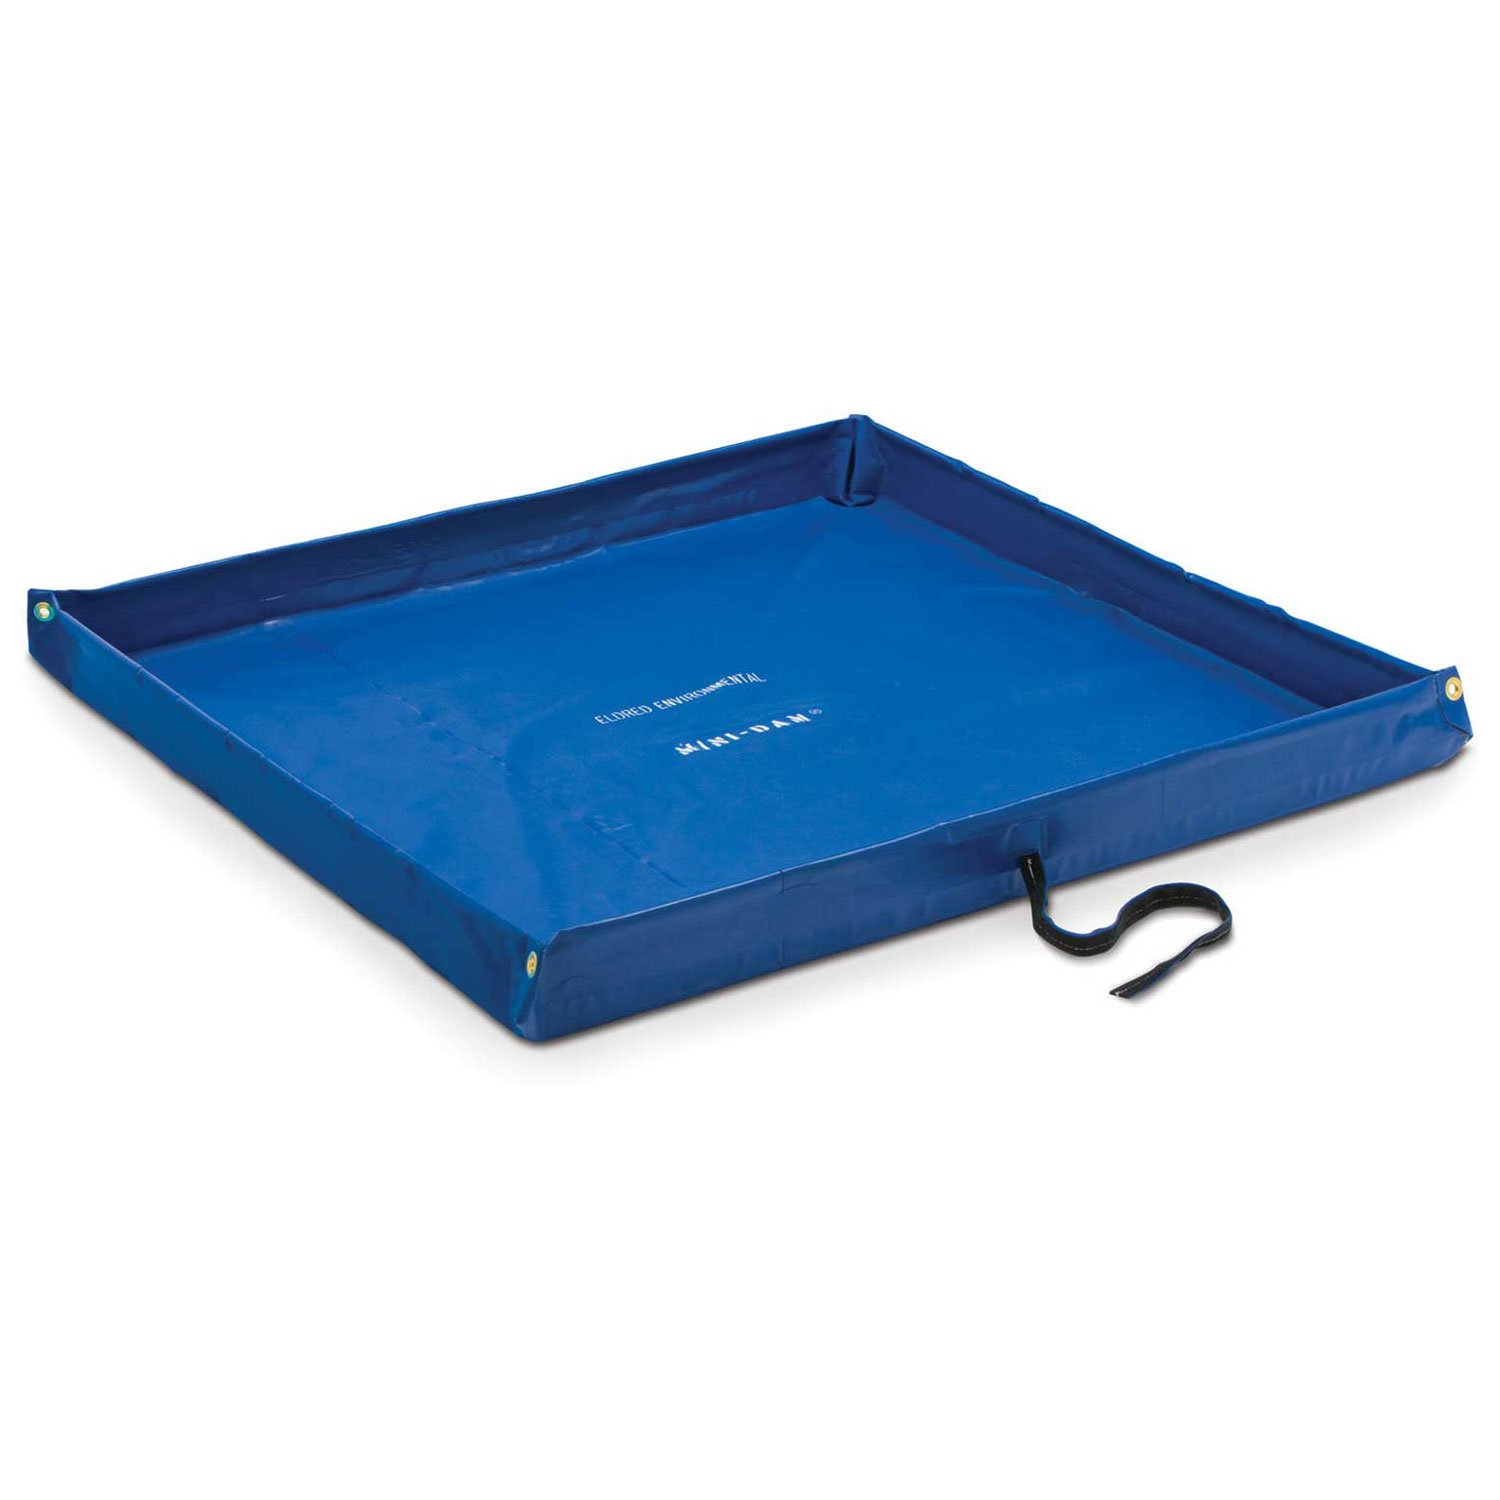 DQE Flexible Containment Pool, Blue, 5'L x 5'W x 4''H